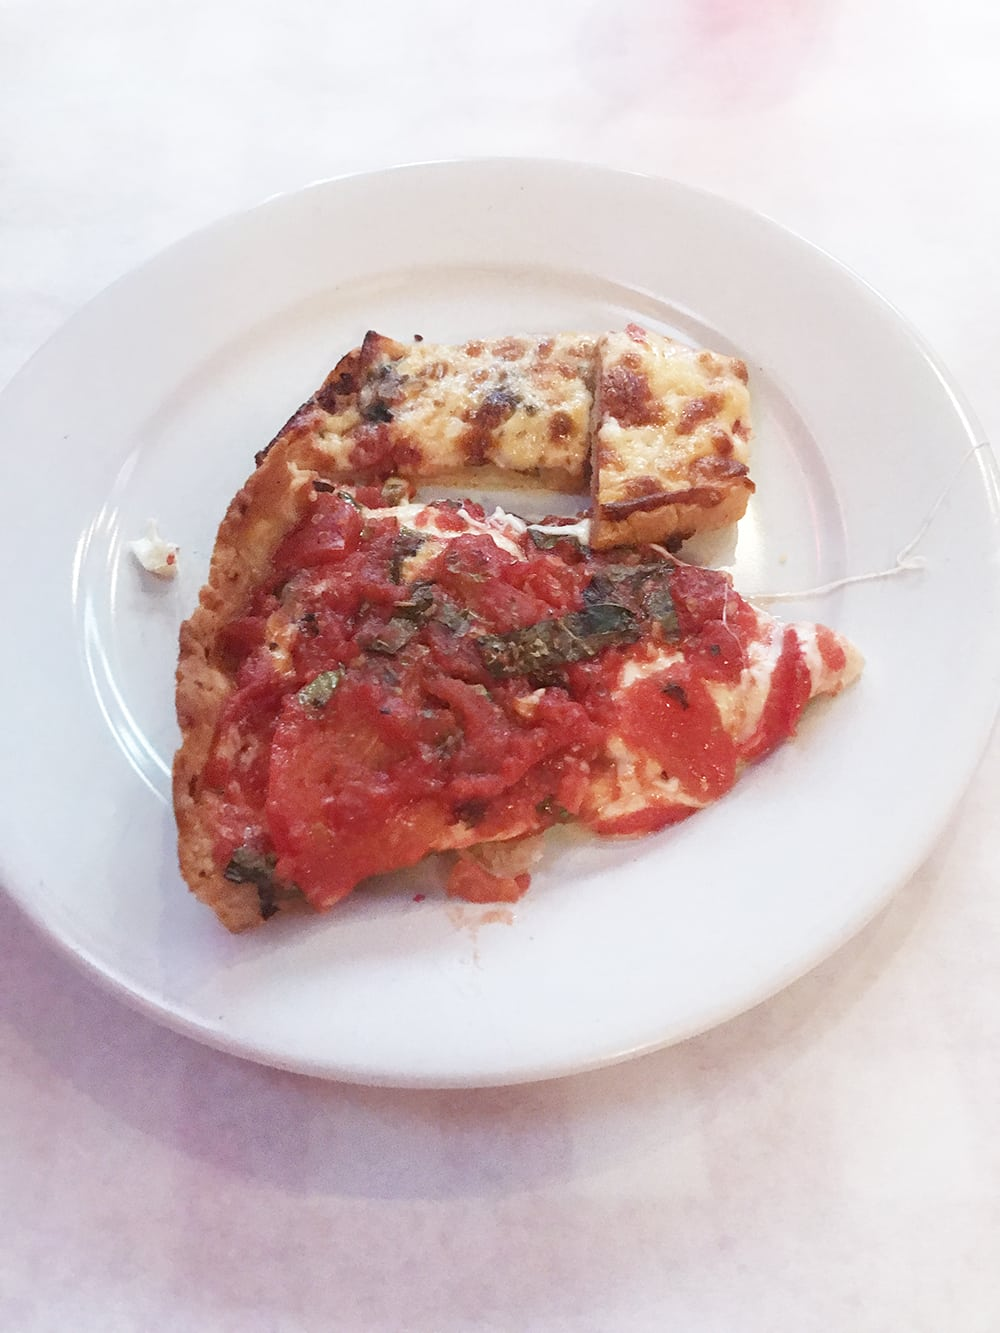 Looking for a great option to treat yo self or someone else to an amazing experience? Give the gift of Tinggly and make someone's day! And then be sure to check out this Chicago Pizza Tour because it was ahhhmazing! #Chicago #VisitChicago #ChicagoPizza